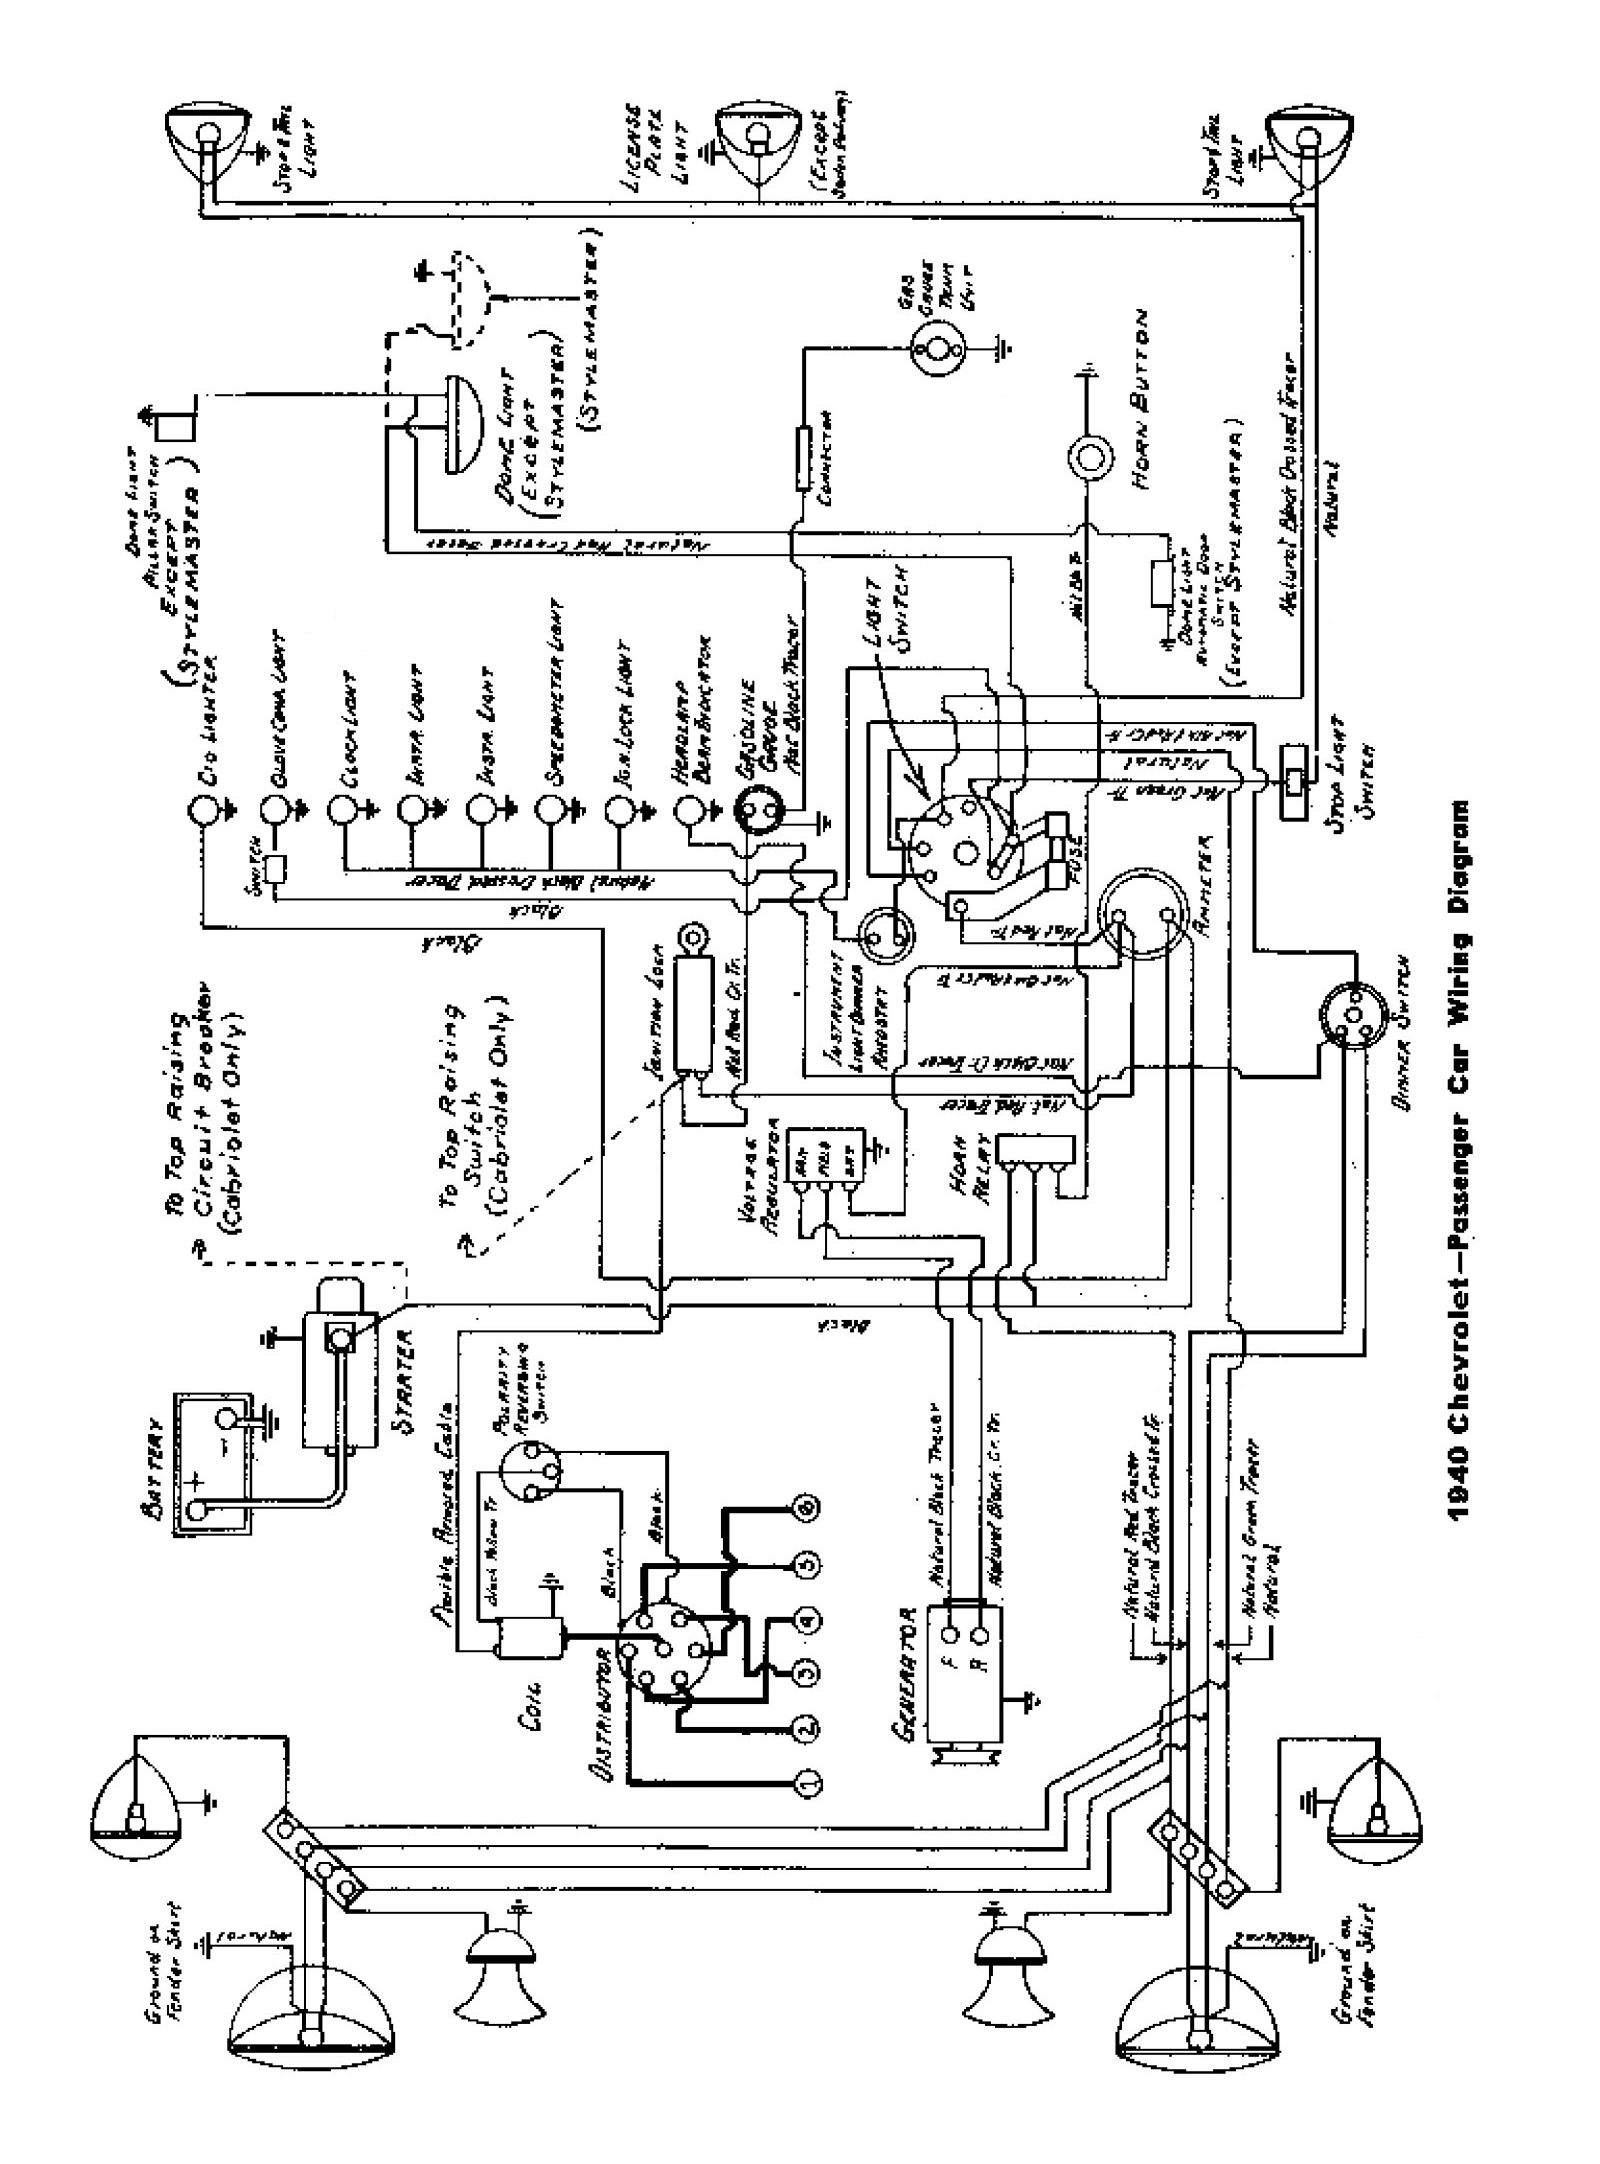 40car chevy wiring diagrams 1948 cadillac wiring diagram at gsmportal.co